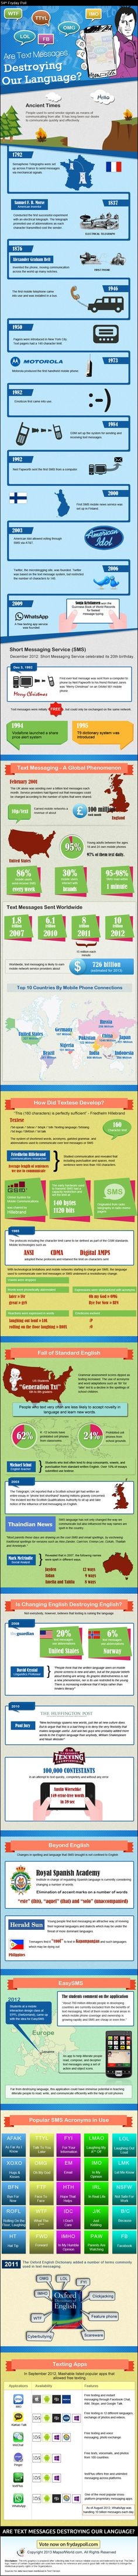 Infographic - Are Text Messages Destroying Our Language?